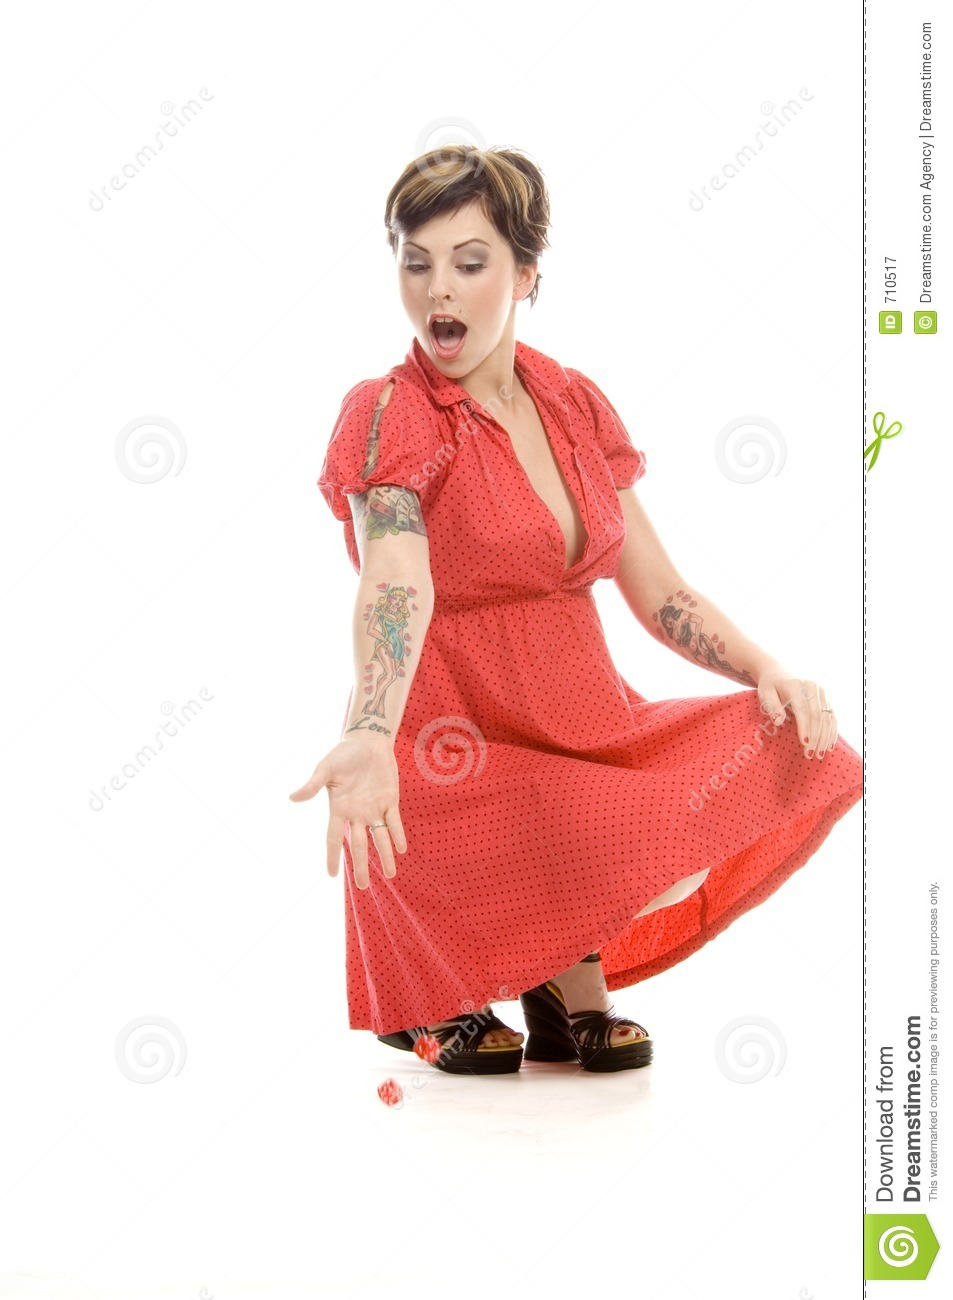 Download Lucky throw stock image. Image of improvising, actress - 710517